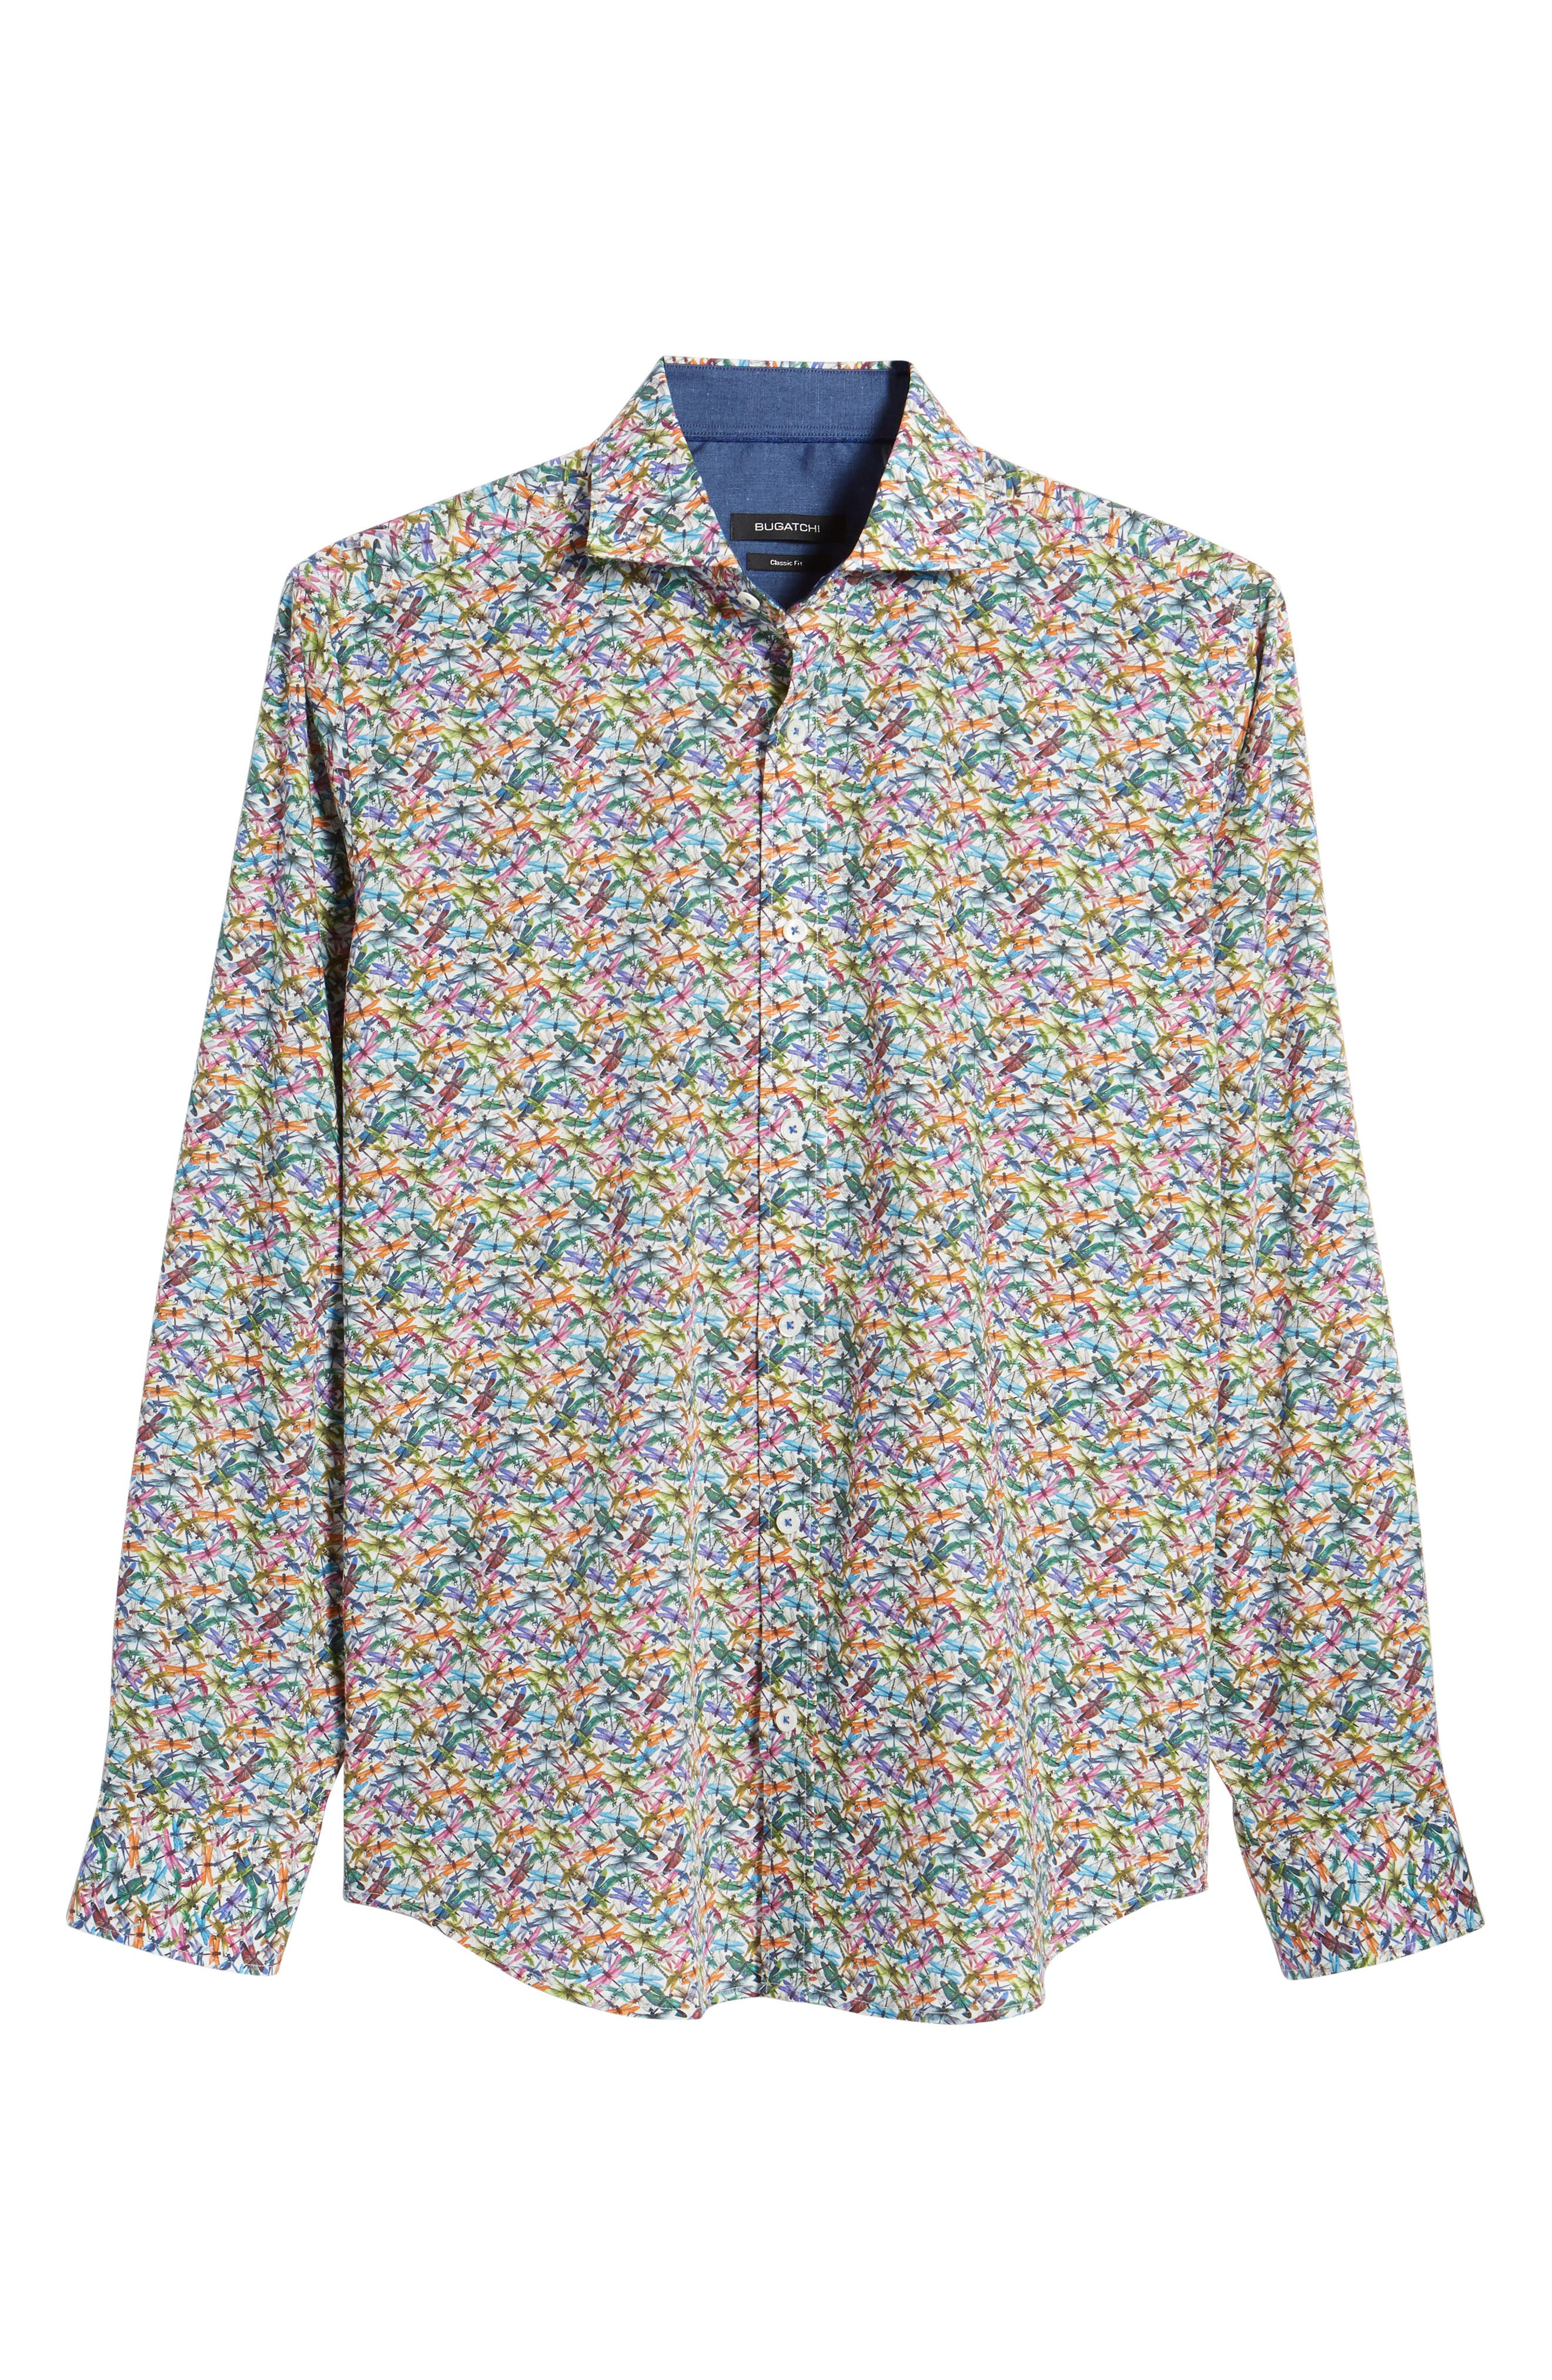 Classic Fit Sport Shirt,                             Alternate thumbnail 6, color,                             Candy